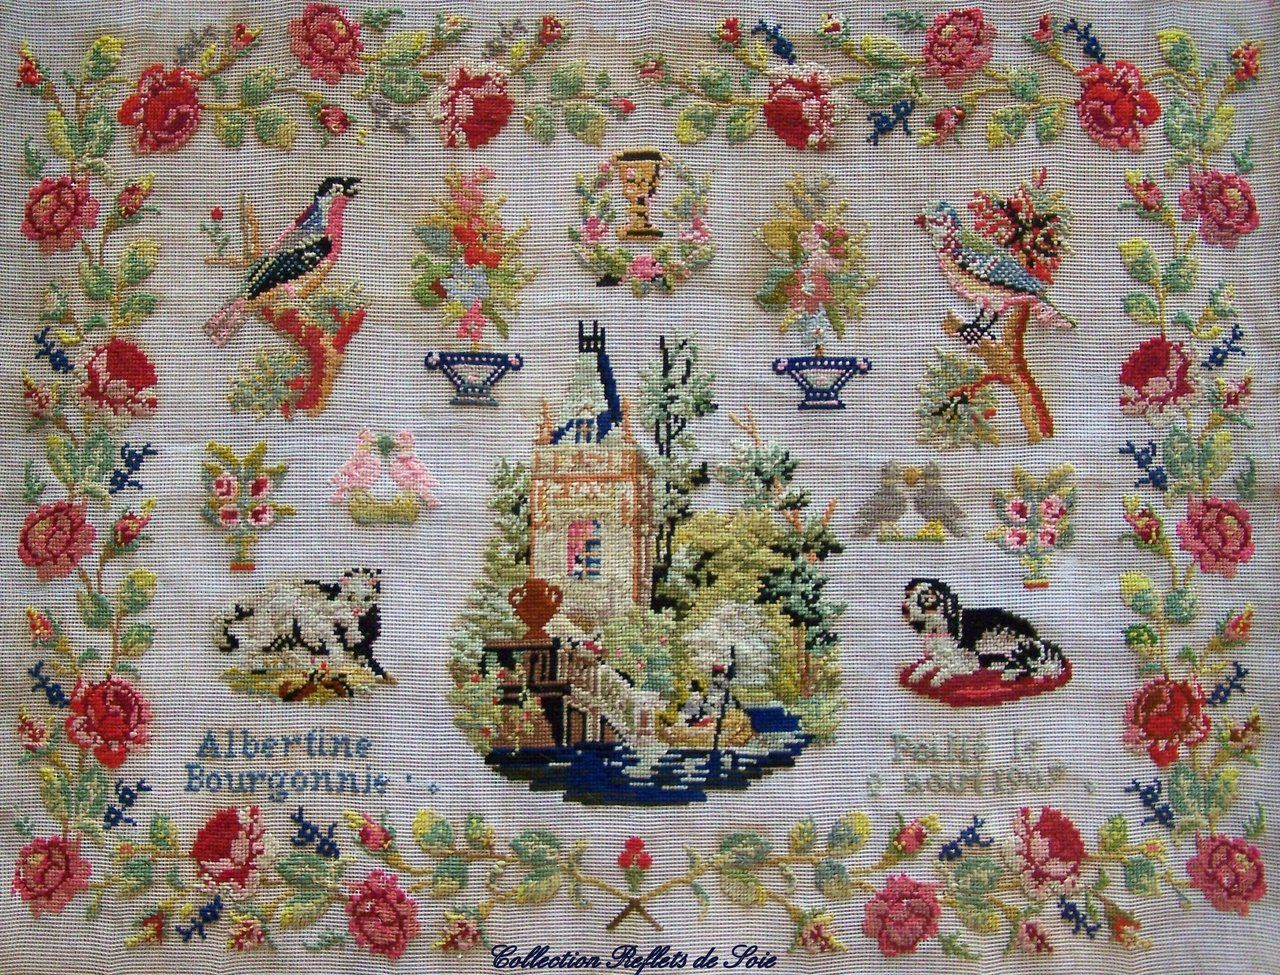 MY CURRENT PROJECT ~ A Fabulous FRENCH Sampler Beautifully Charted & Presented By Reflets De Soie ~ Albertine Bourgonnie Dated 1907